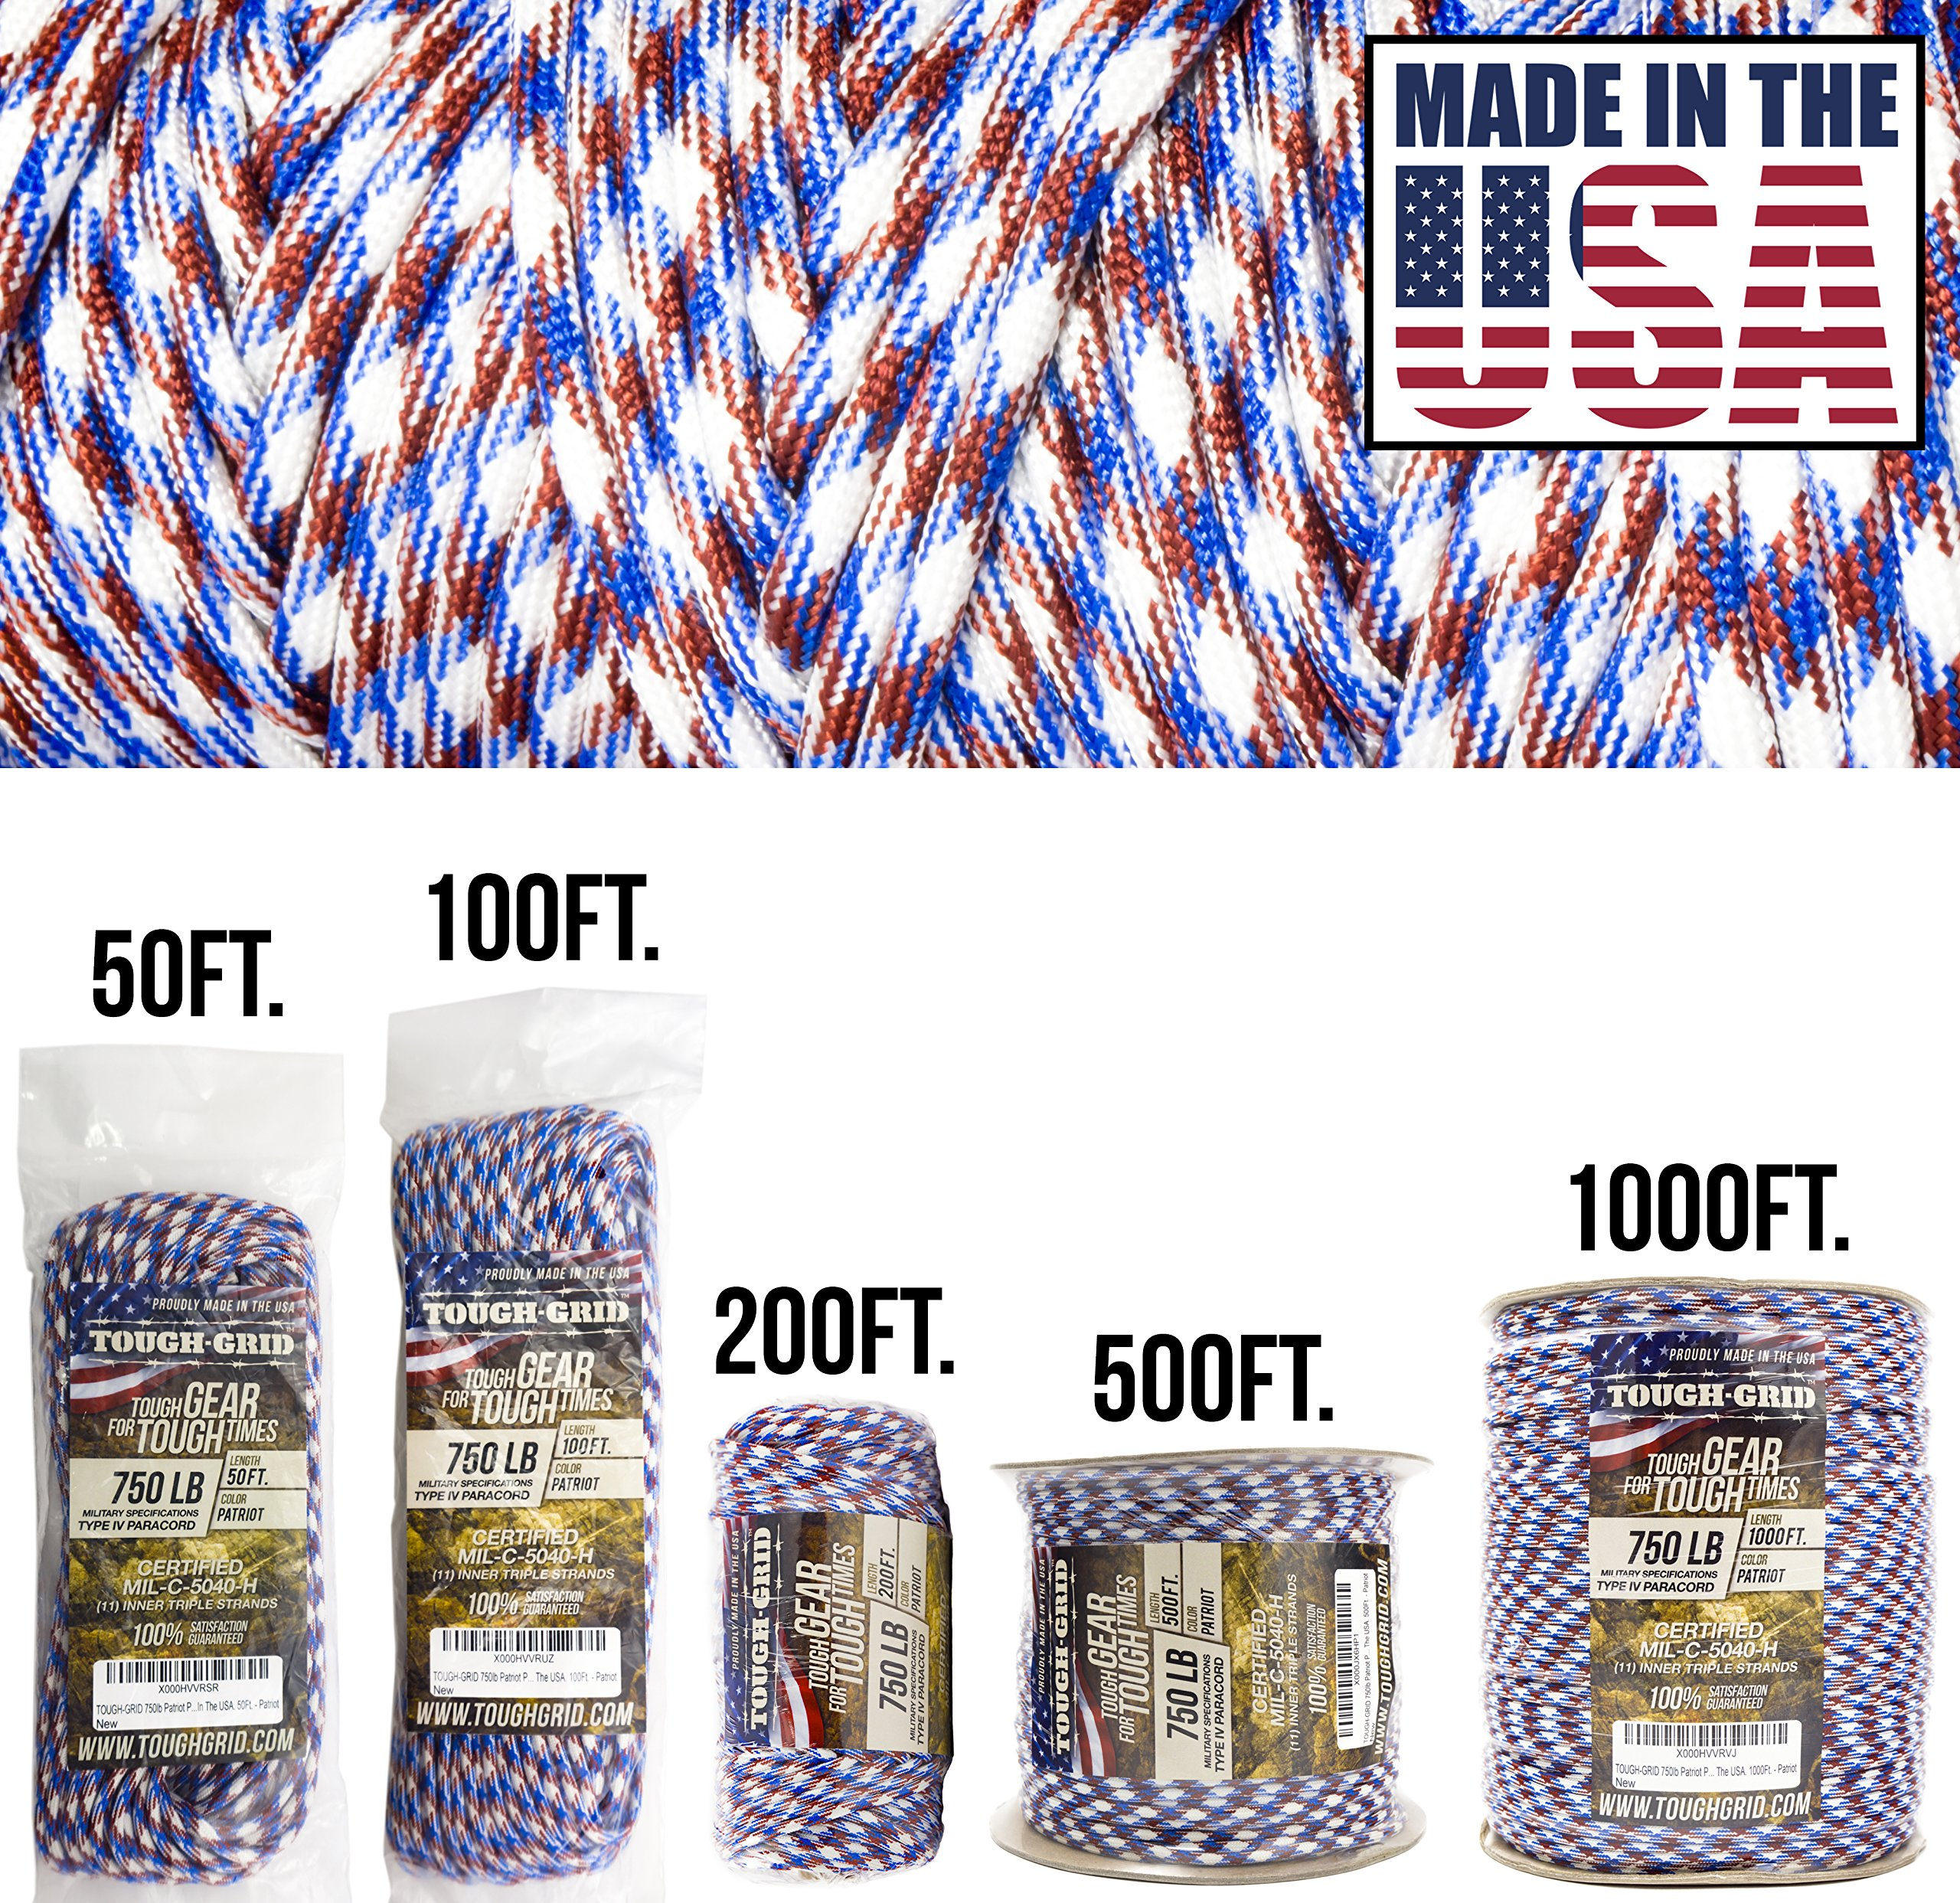 TOUGH-GRID 750lb Patriot Paracord/Parachute Cord - Genuine Mil Spec Type IV 750lb Paracord Used by The US Military (MIl-C-5040-H) - 100% Nylon - Made in The USA. 50Ft. - Patriot by TOUGH-GRID